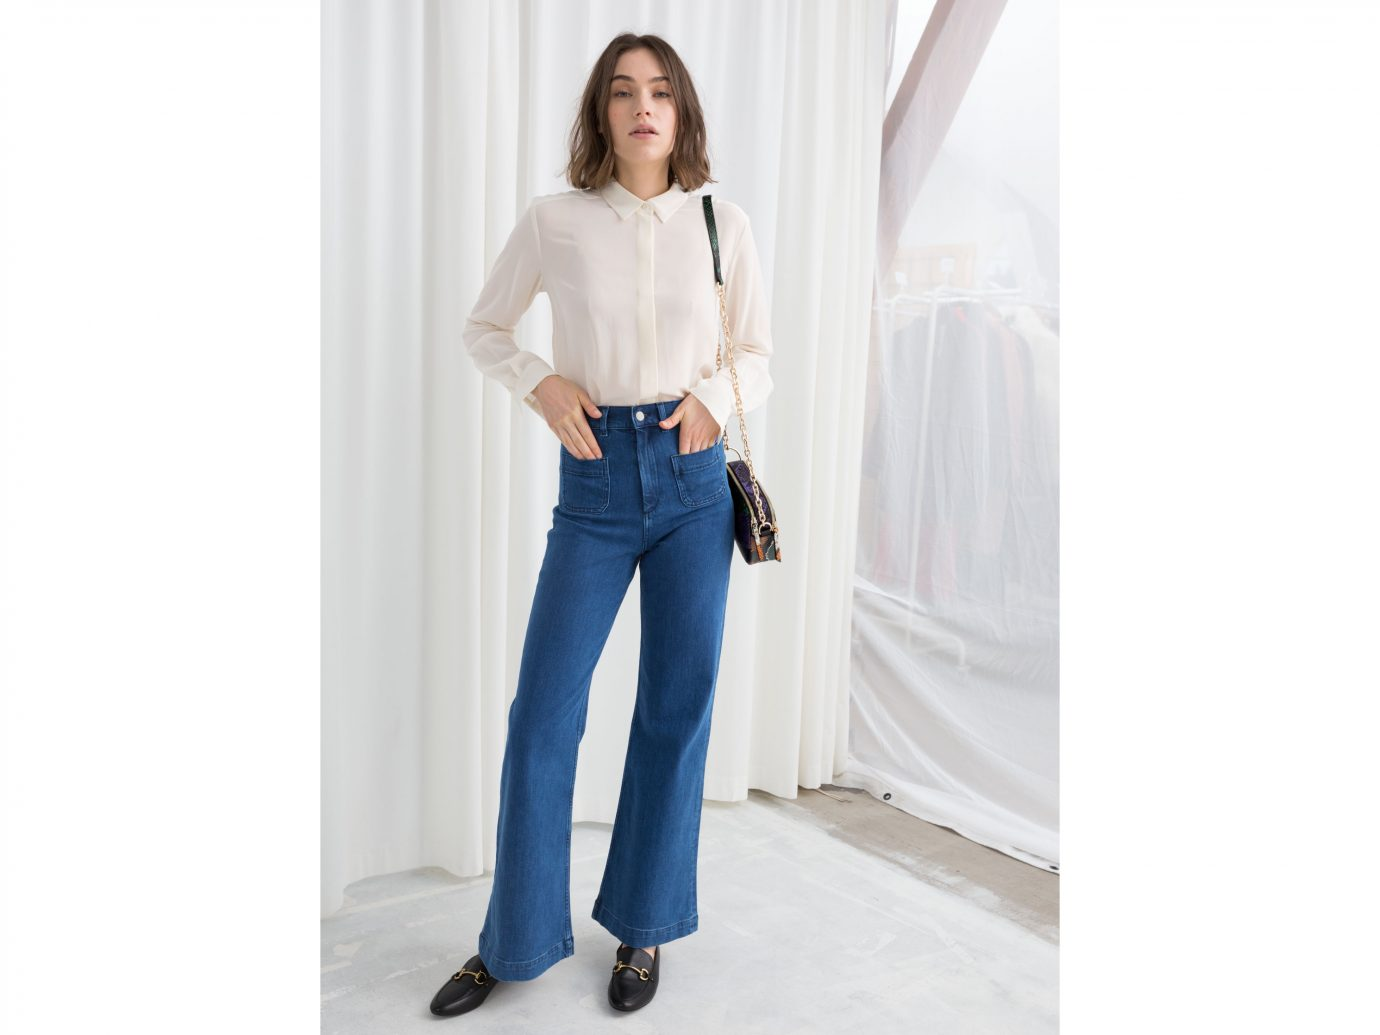 & Other Stories Flared Mid Rise Jeans